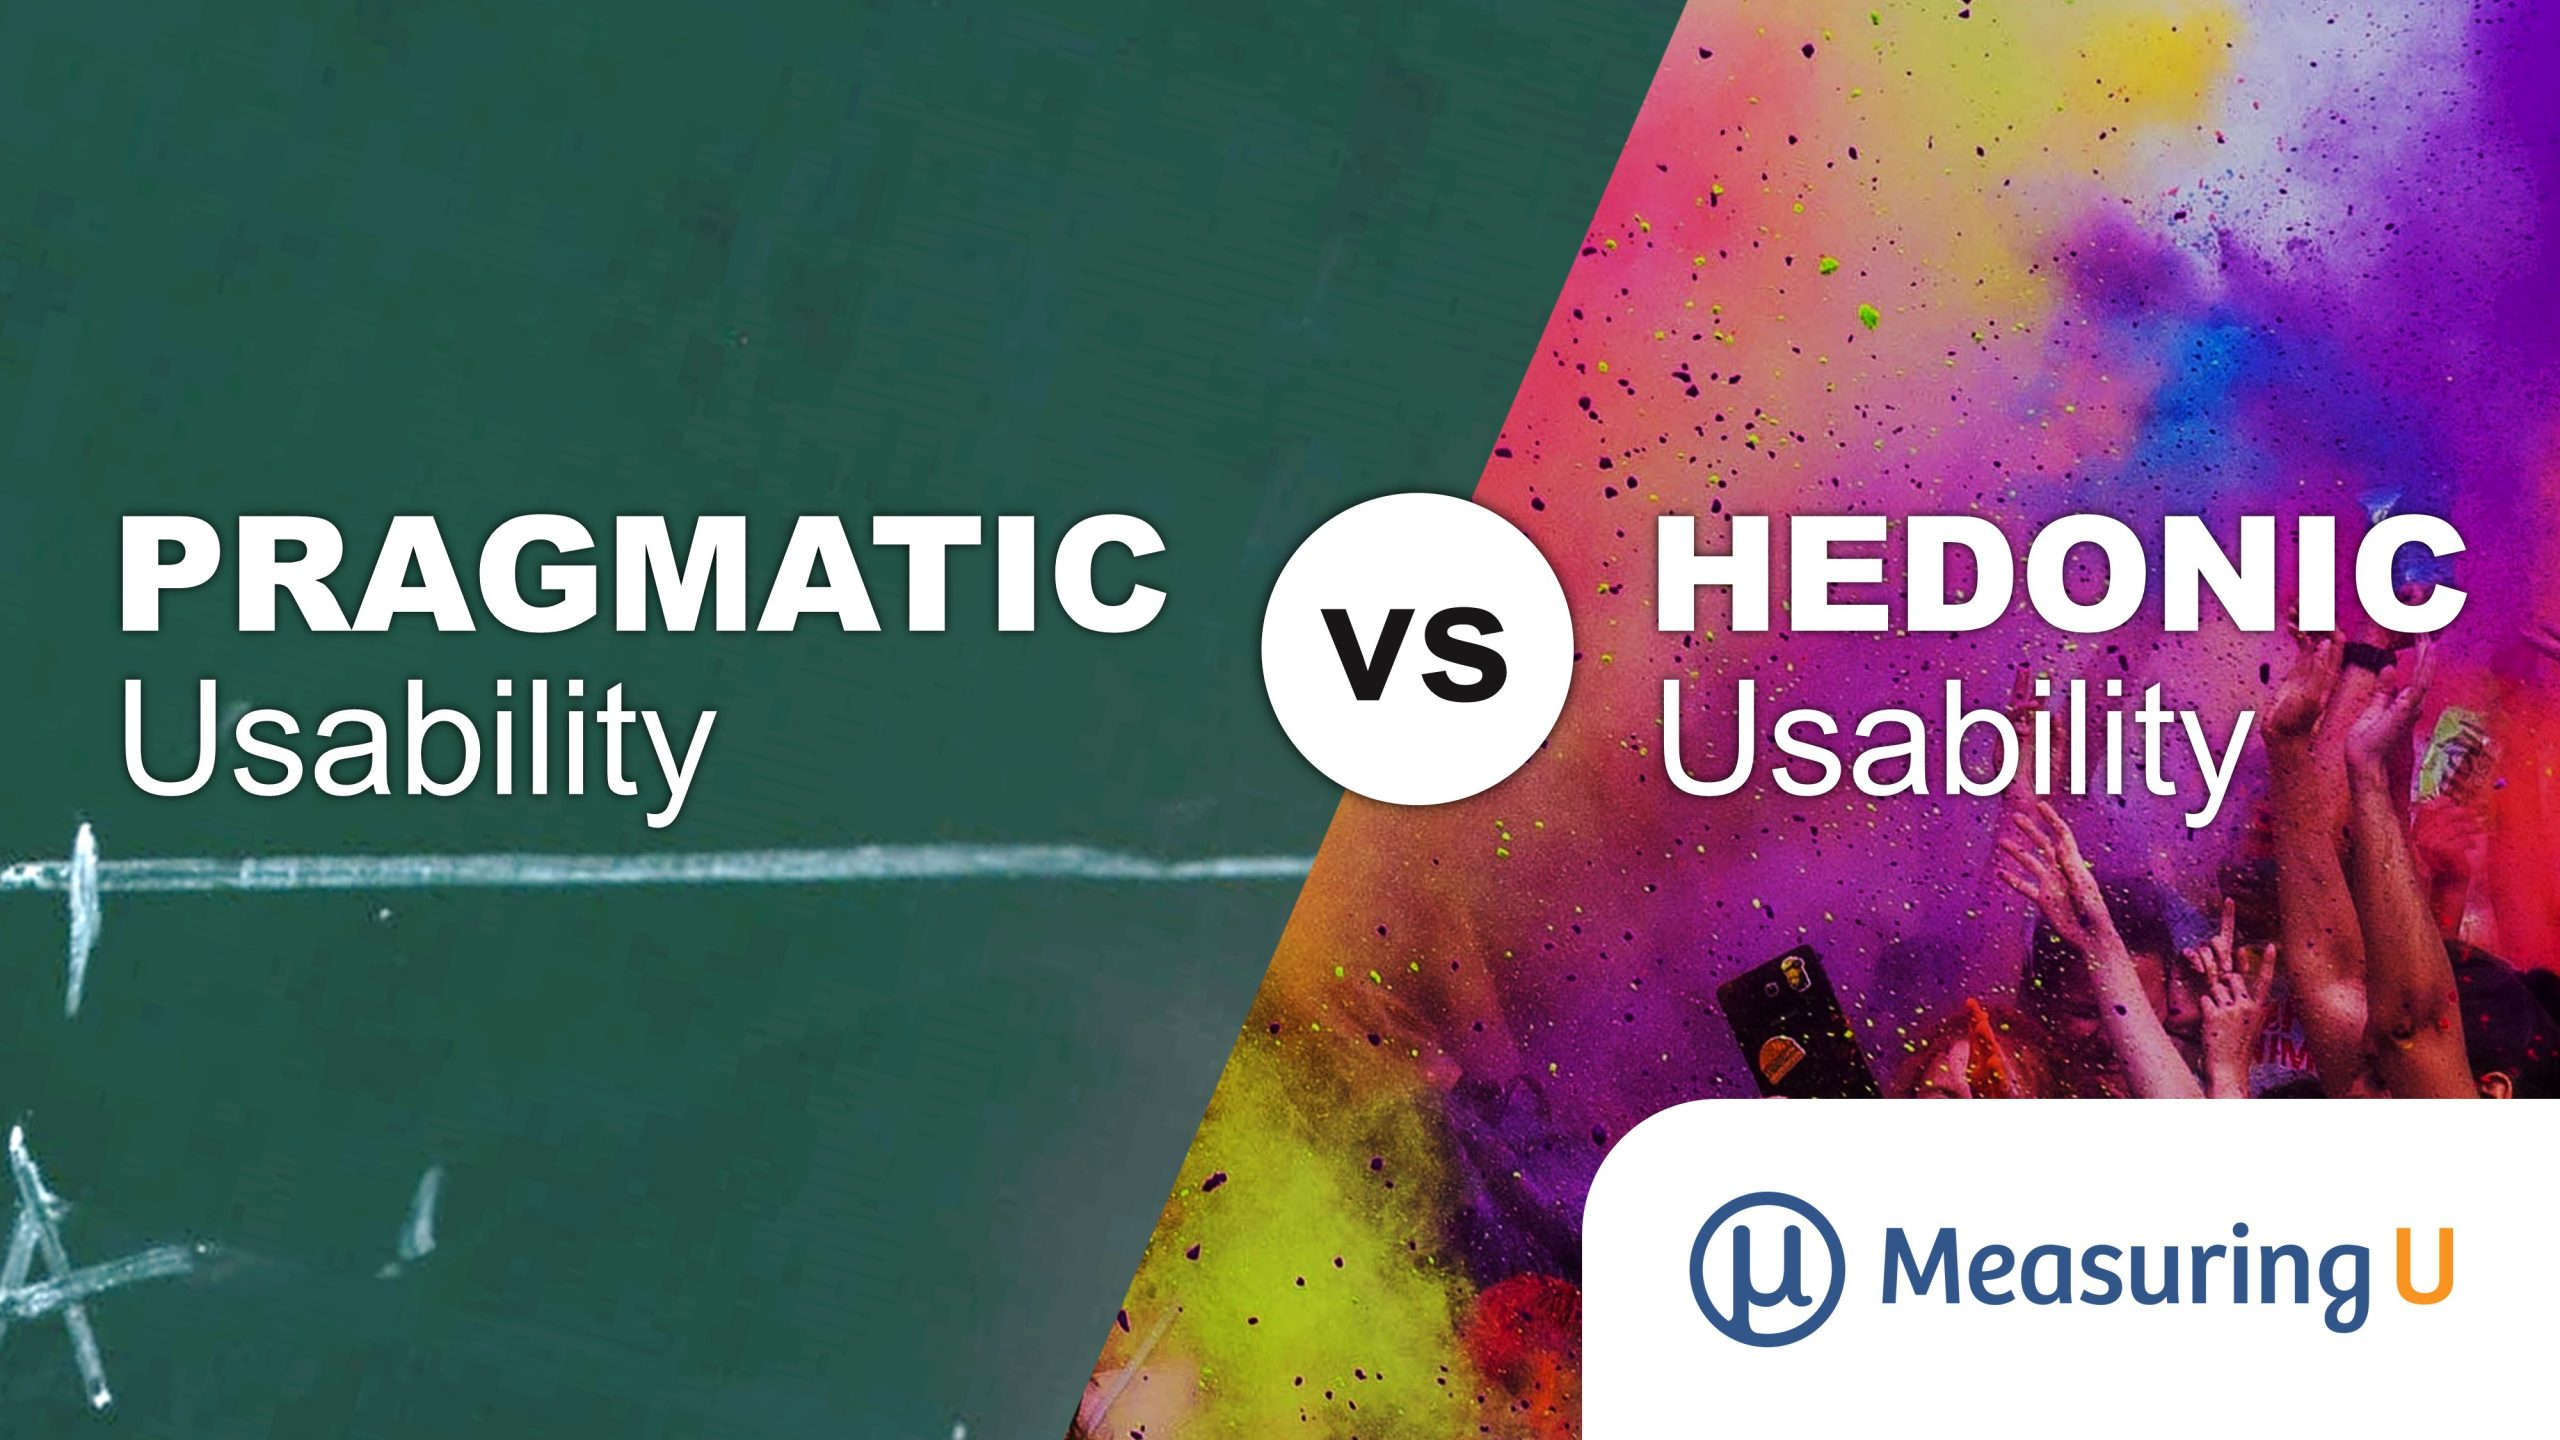 What's the Difference Between Pragmatic and Hedonic Usability?